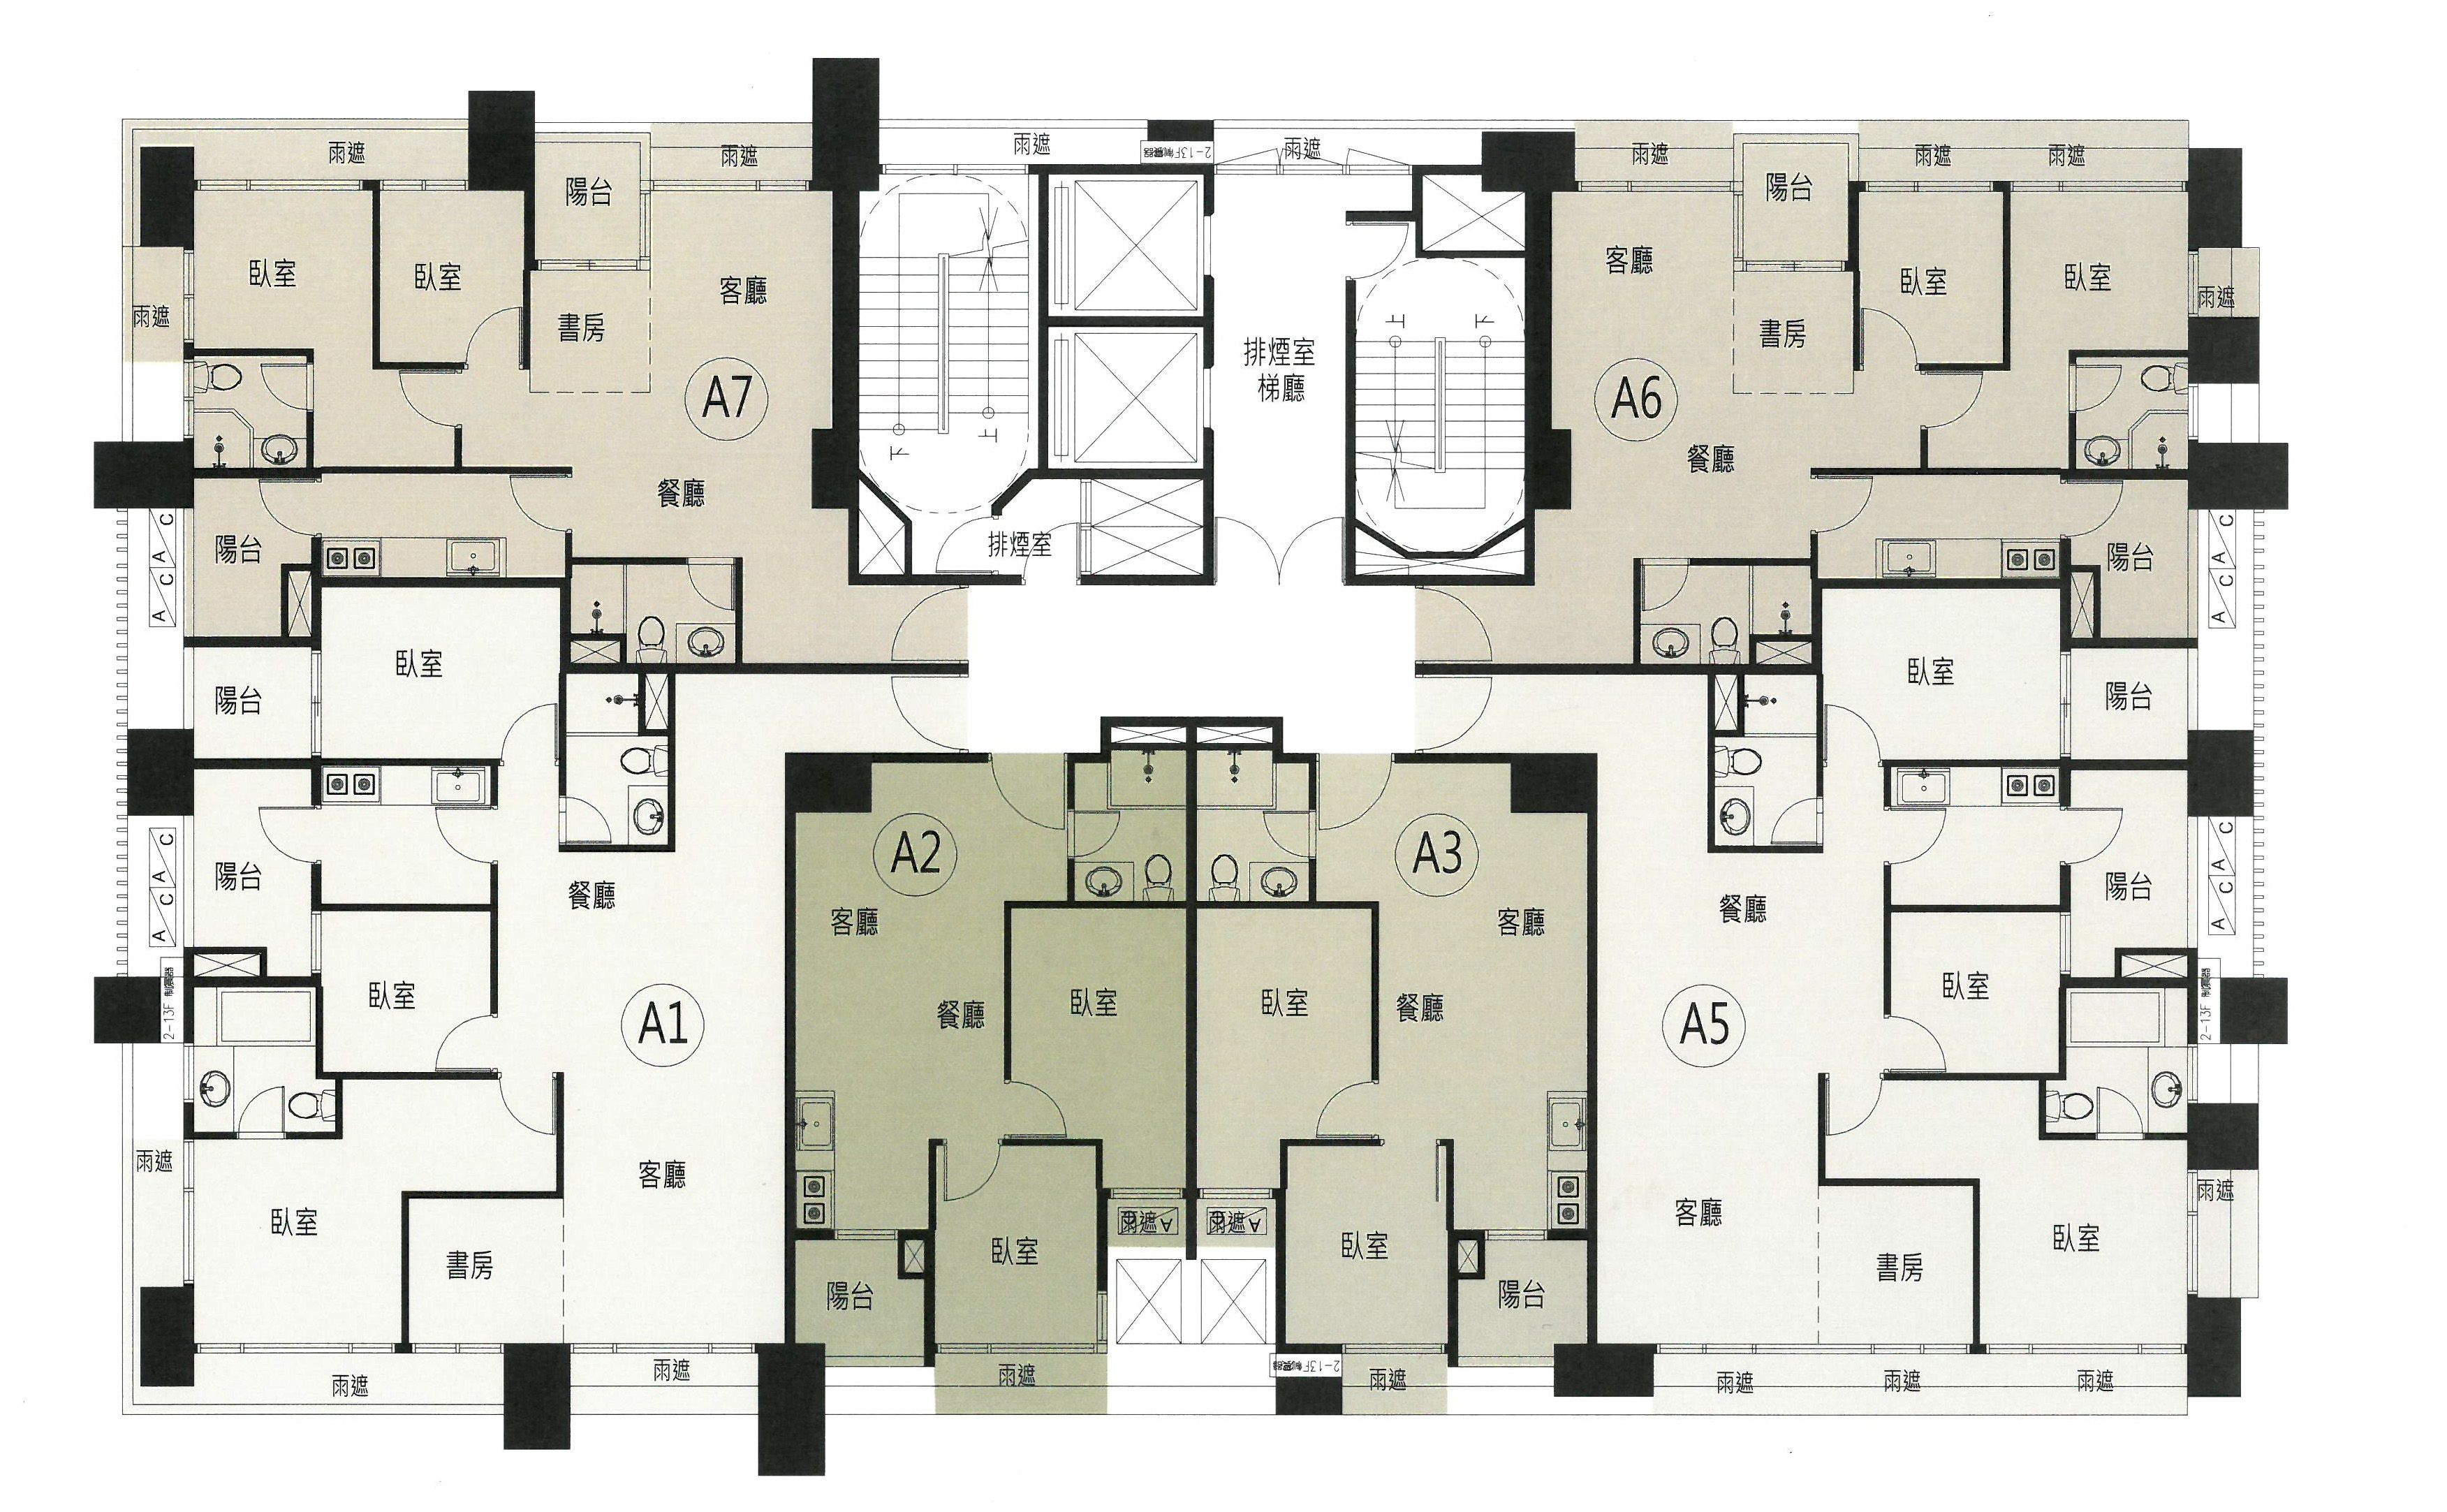 Pin By Dung Sheng Luo On A Plan Housing Family House Plans Apartment Floor Plans Apartment Plans